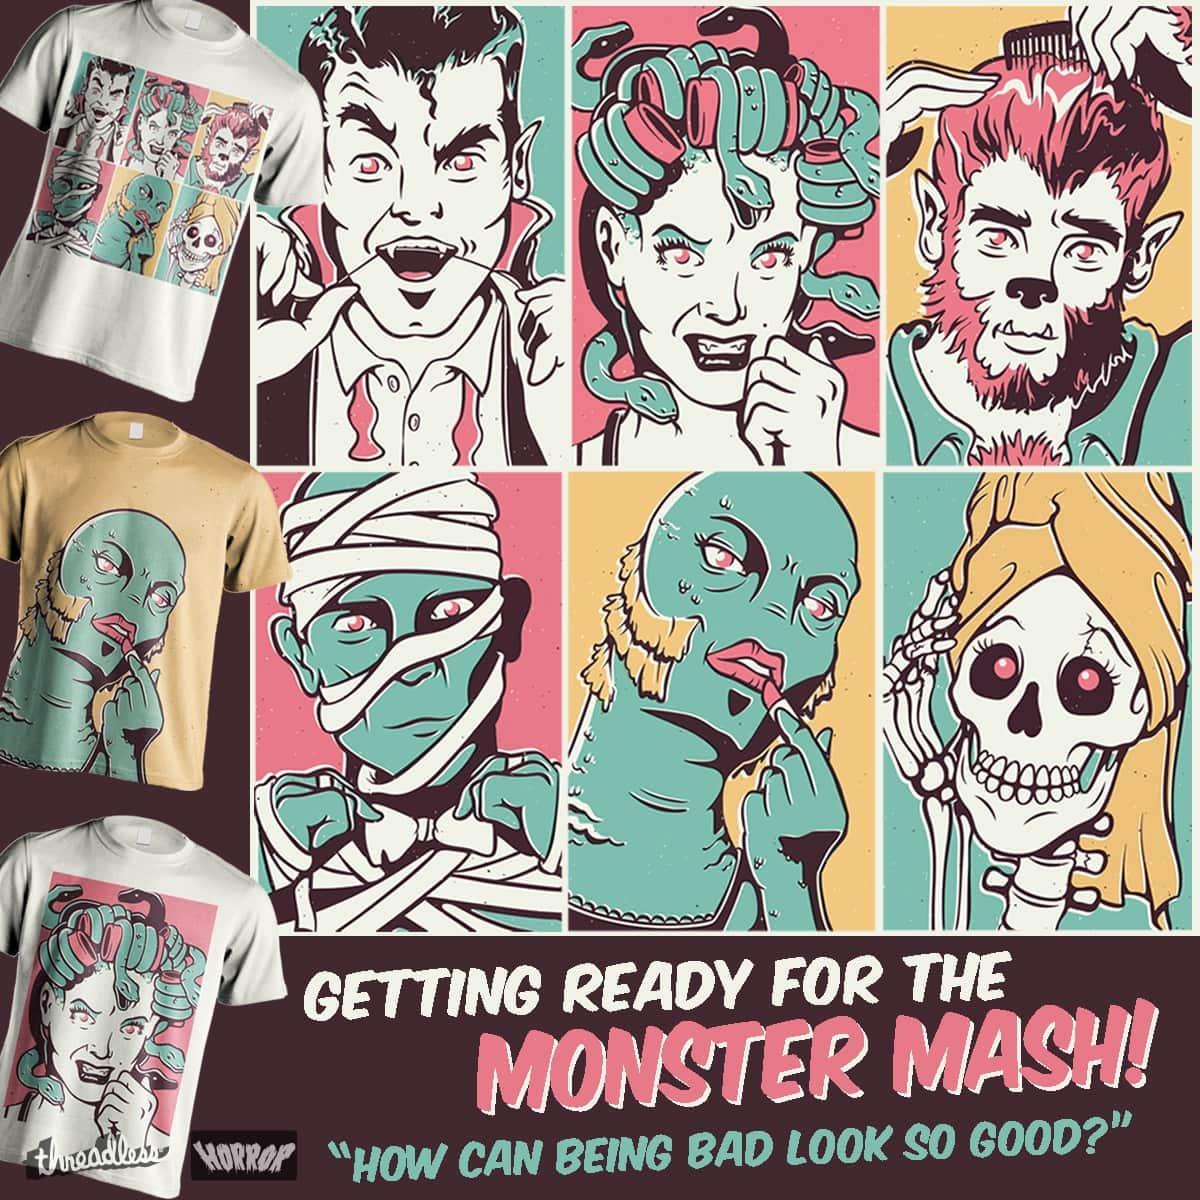 The Monster Mash by Nathan Joyce on Threadless